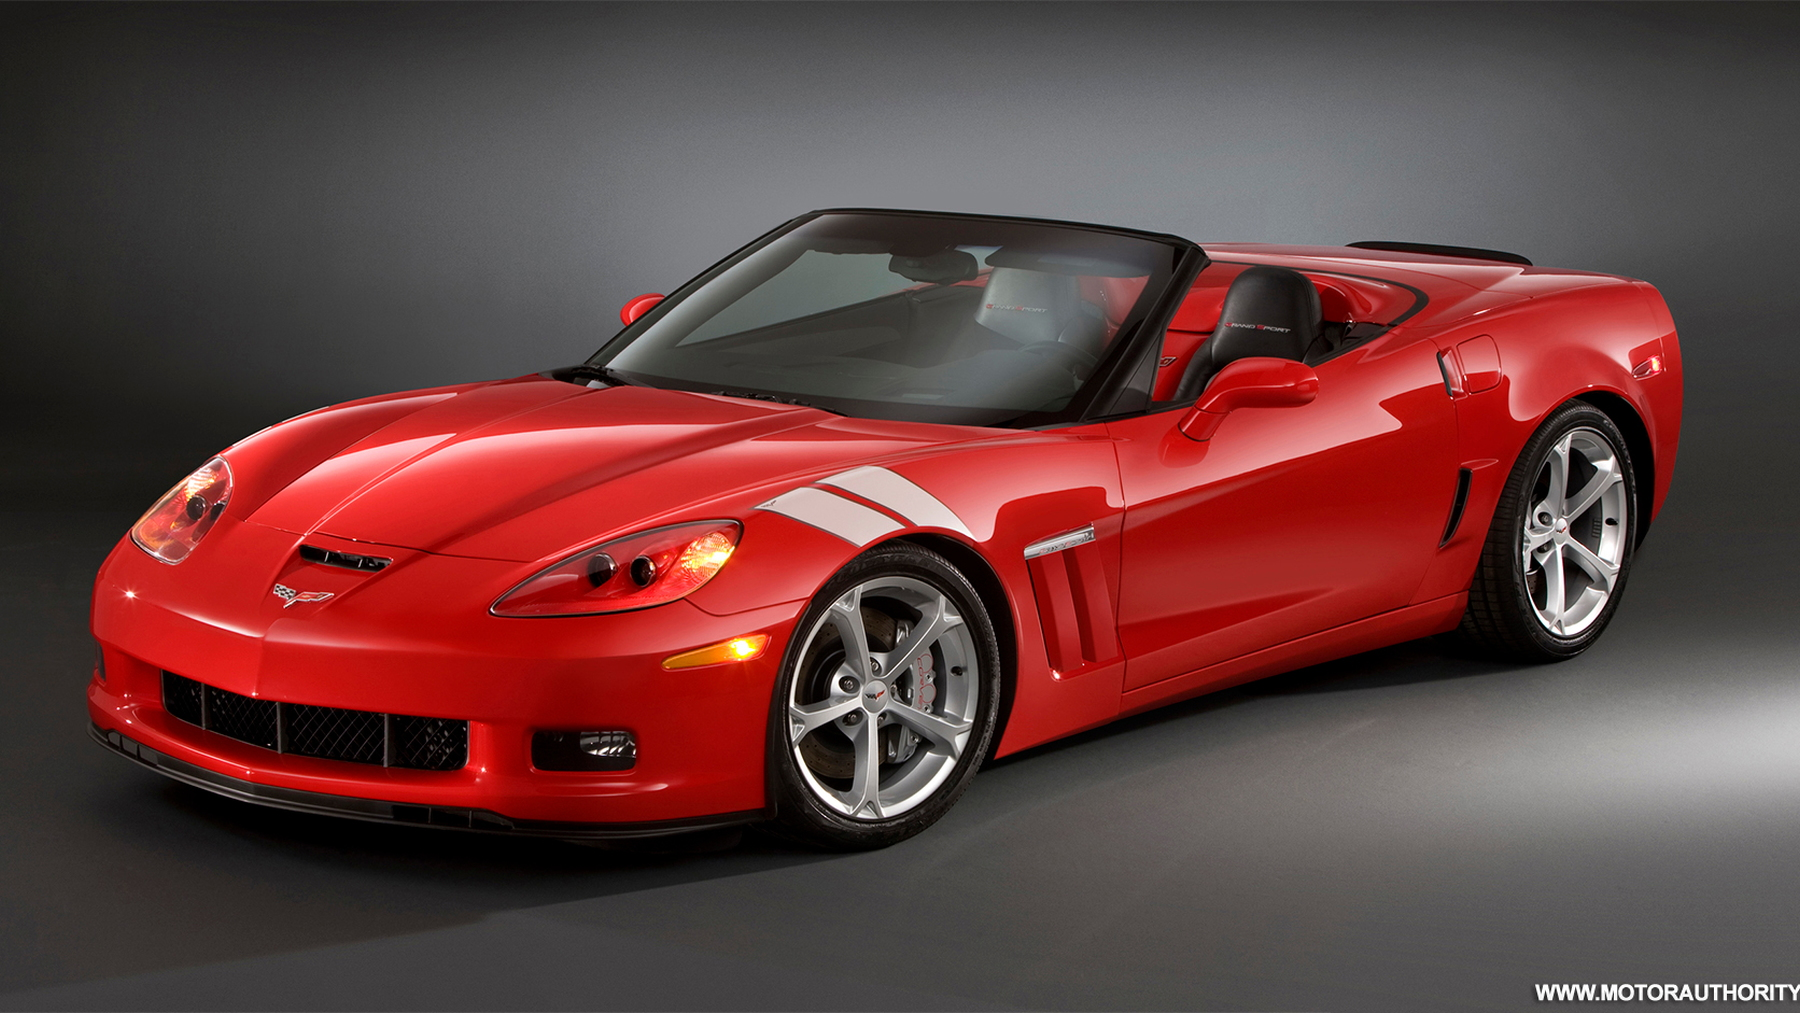 2010 chevrolet corvette grand sport convertible 003